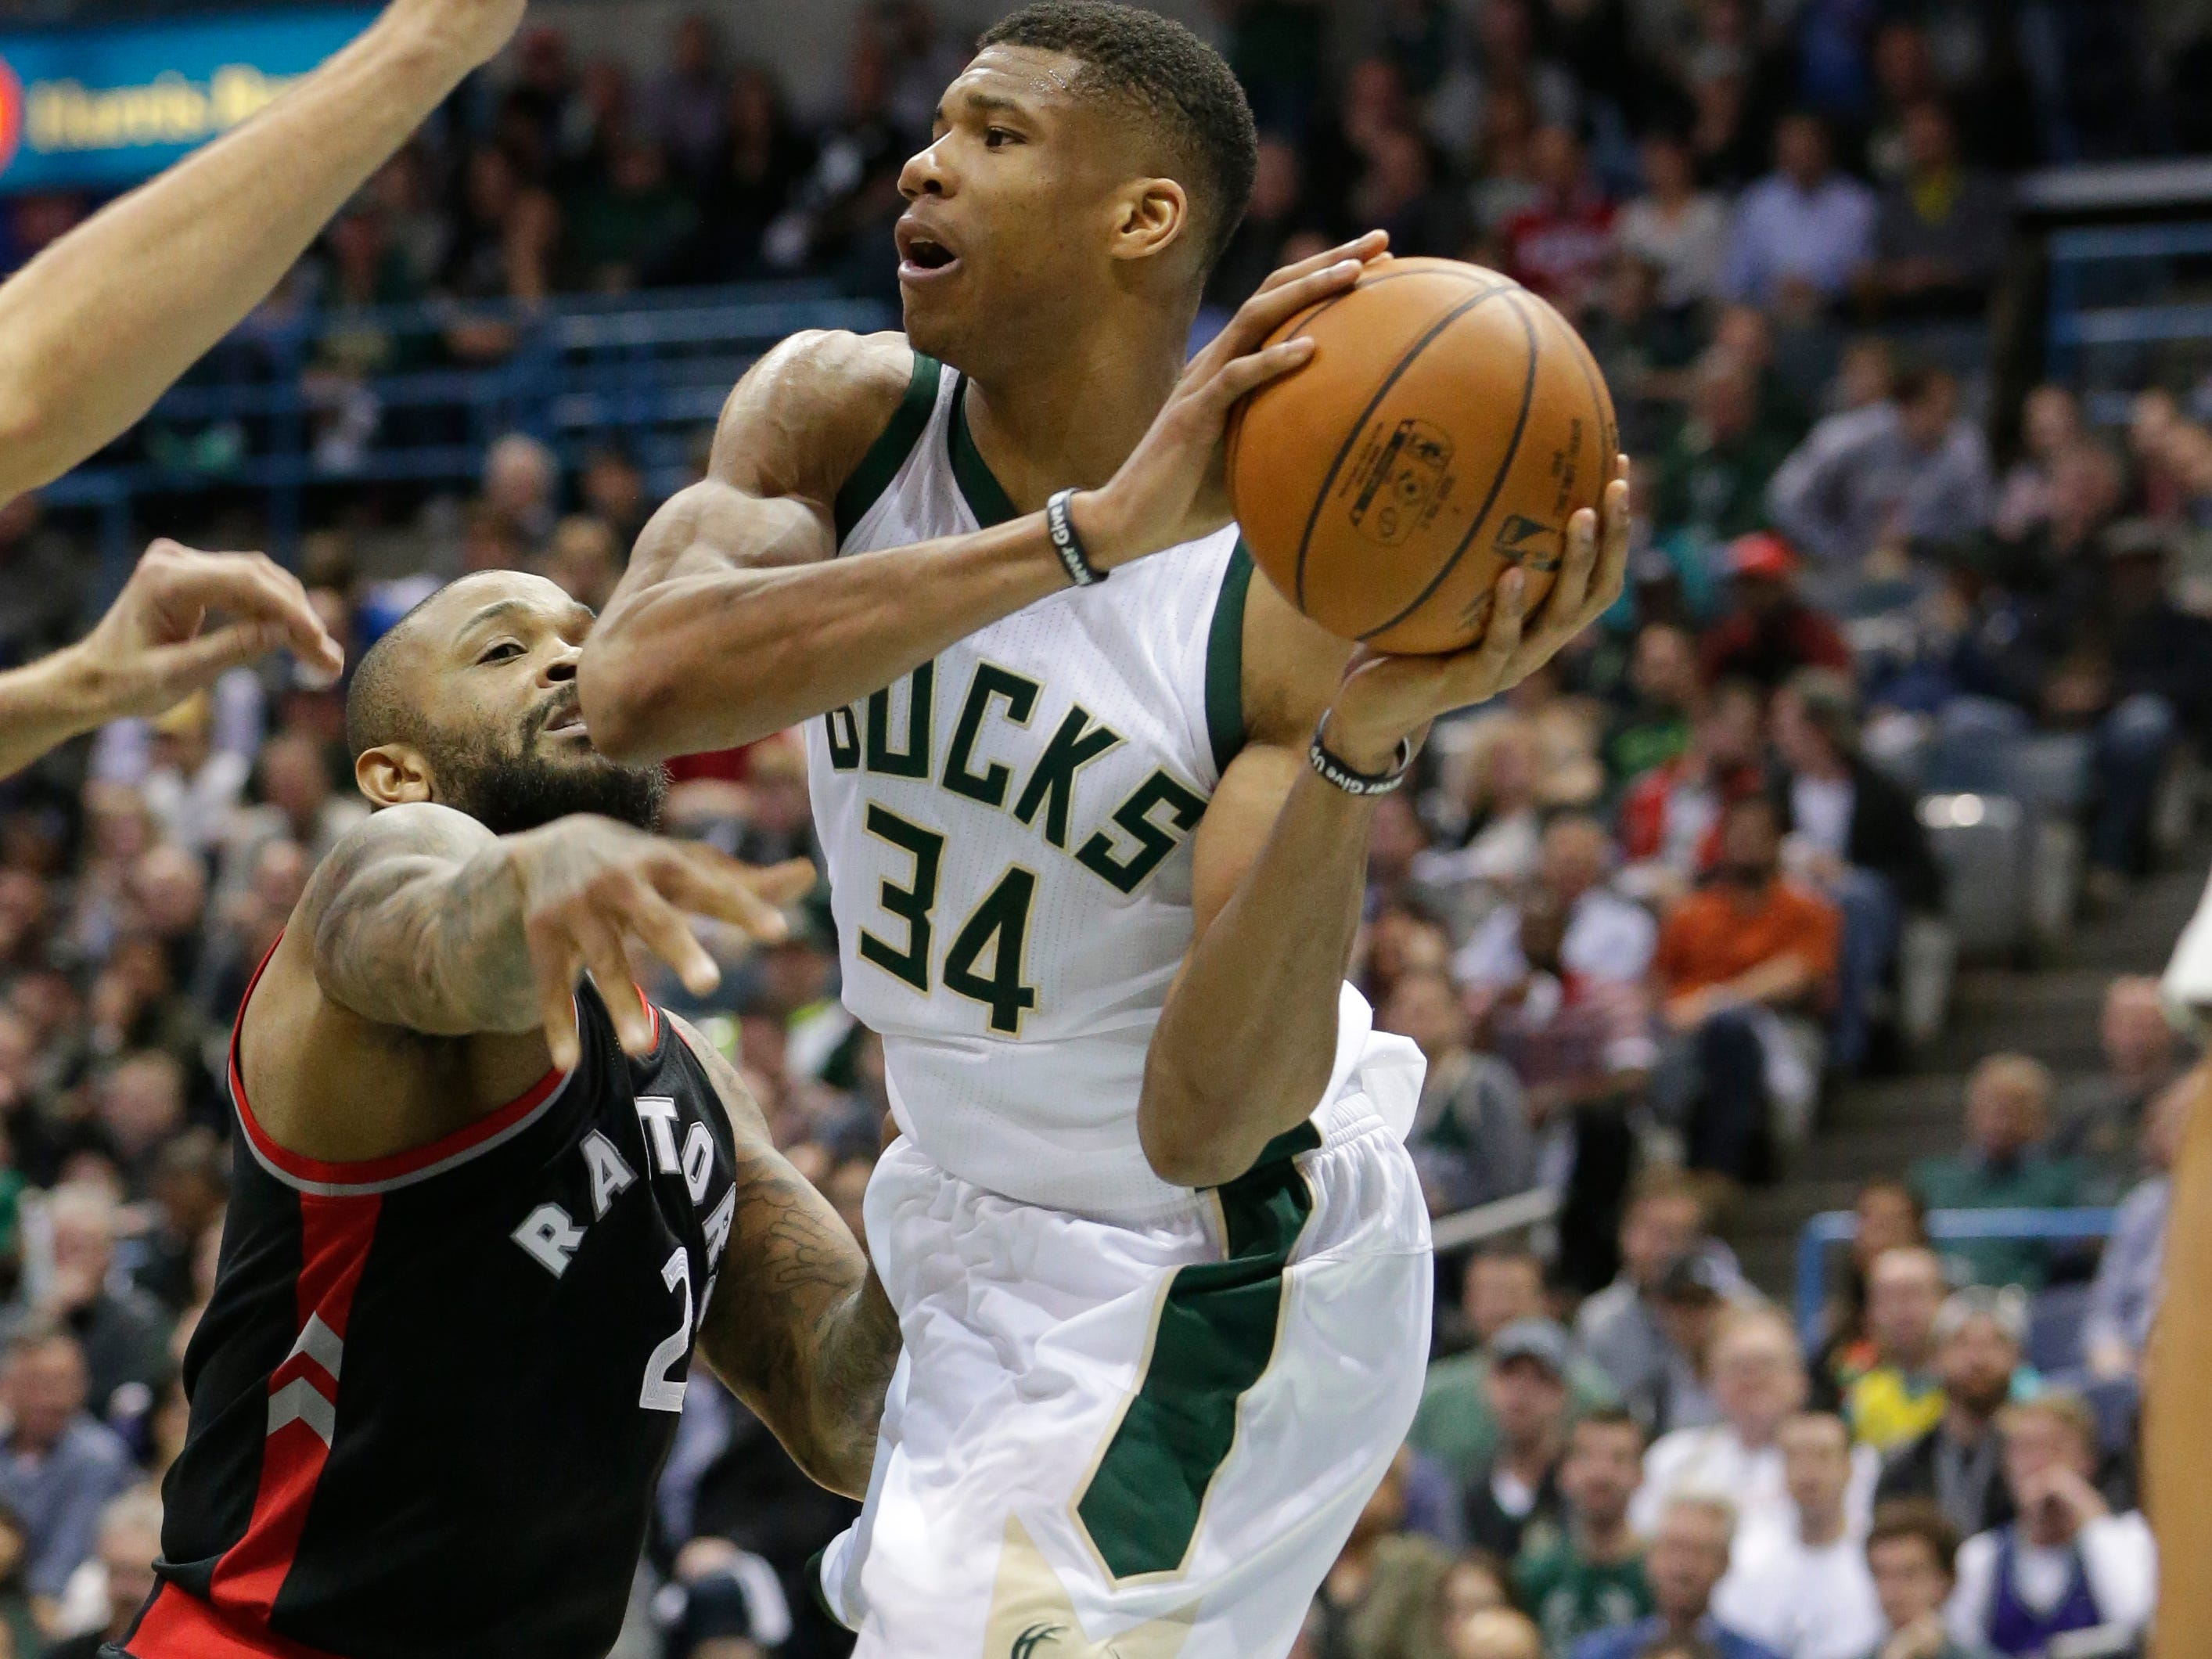 2017: Milwaukee Bucks forward Giannis Antetokounmpo makes a pass over Toronto Raptors forward PJ Tucker during the second half of Game 6 in the first round of the Eastern Conference playoffs on April 27, 2017, at the BMO Harris Bradley Center. The Toronto Raptors beat the Milwaukee Bucks, 92-89, to advance to the conference semifinals.